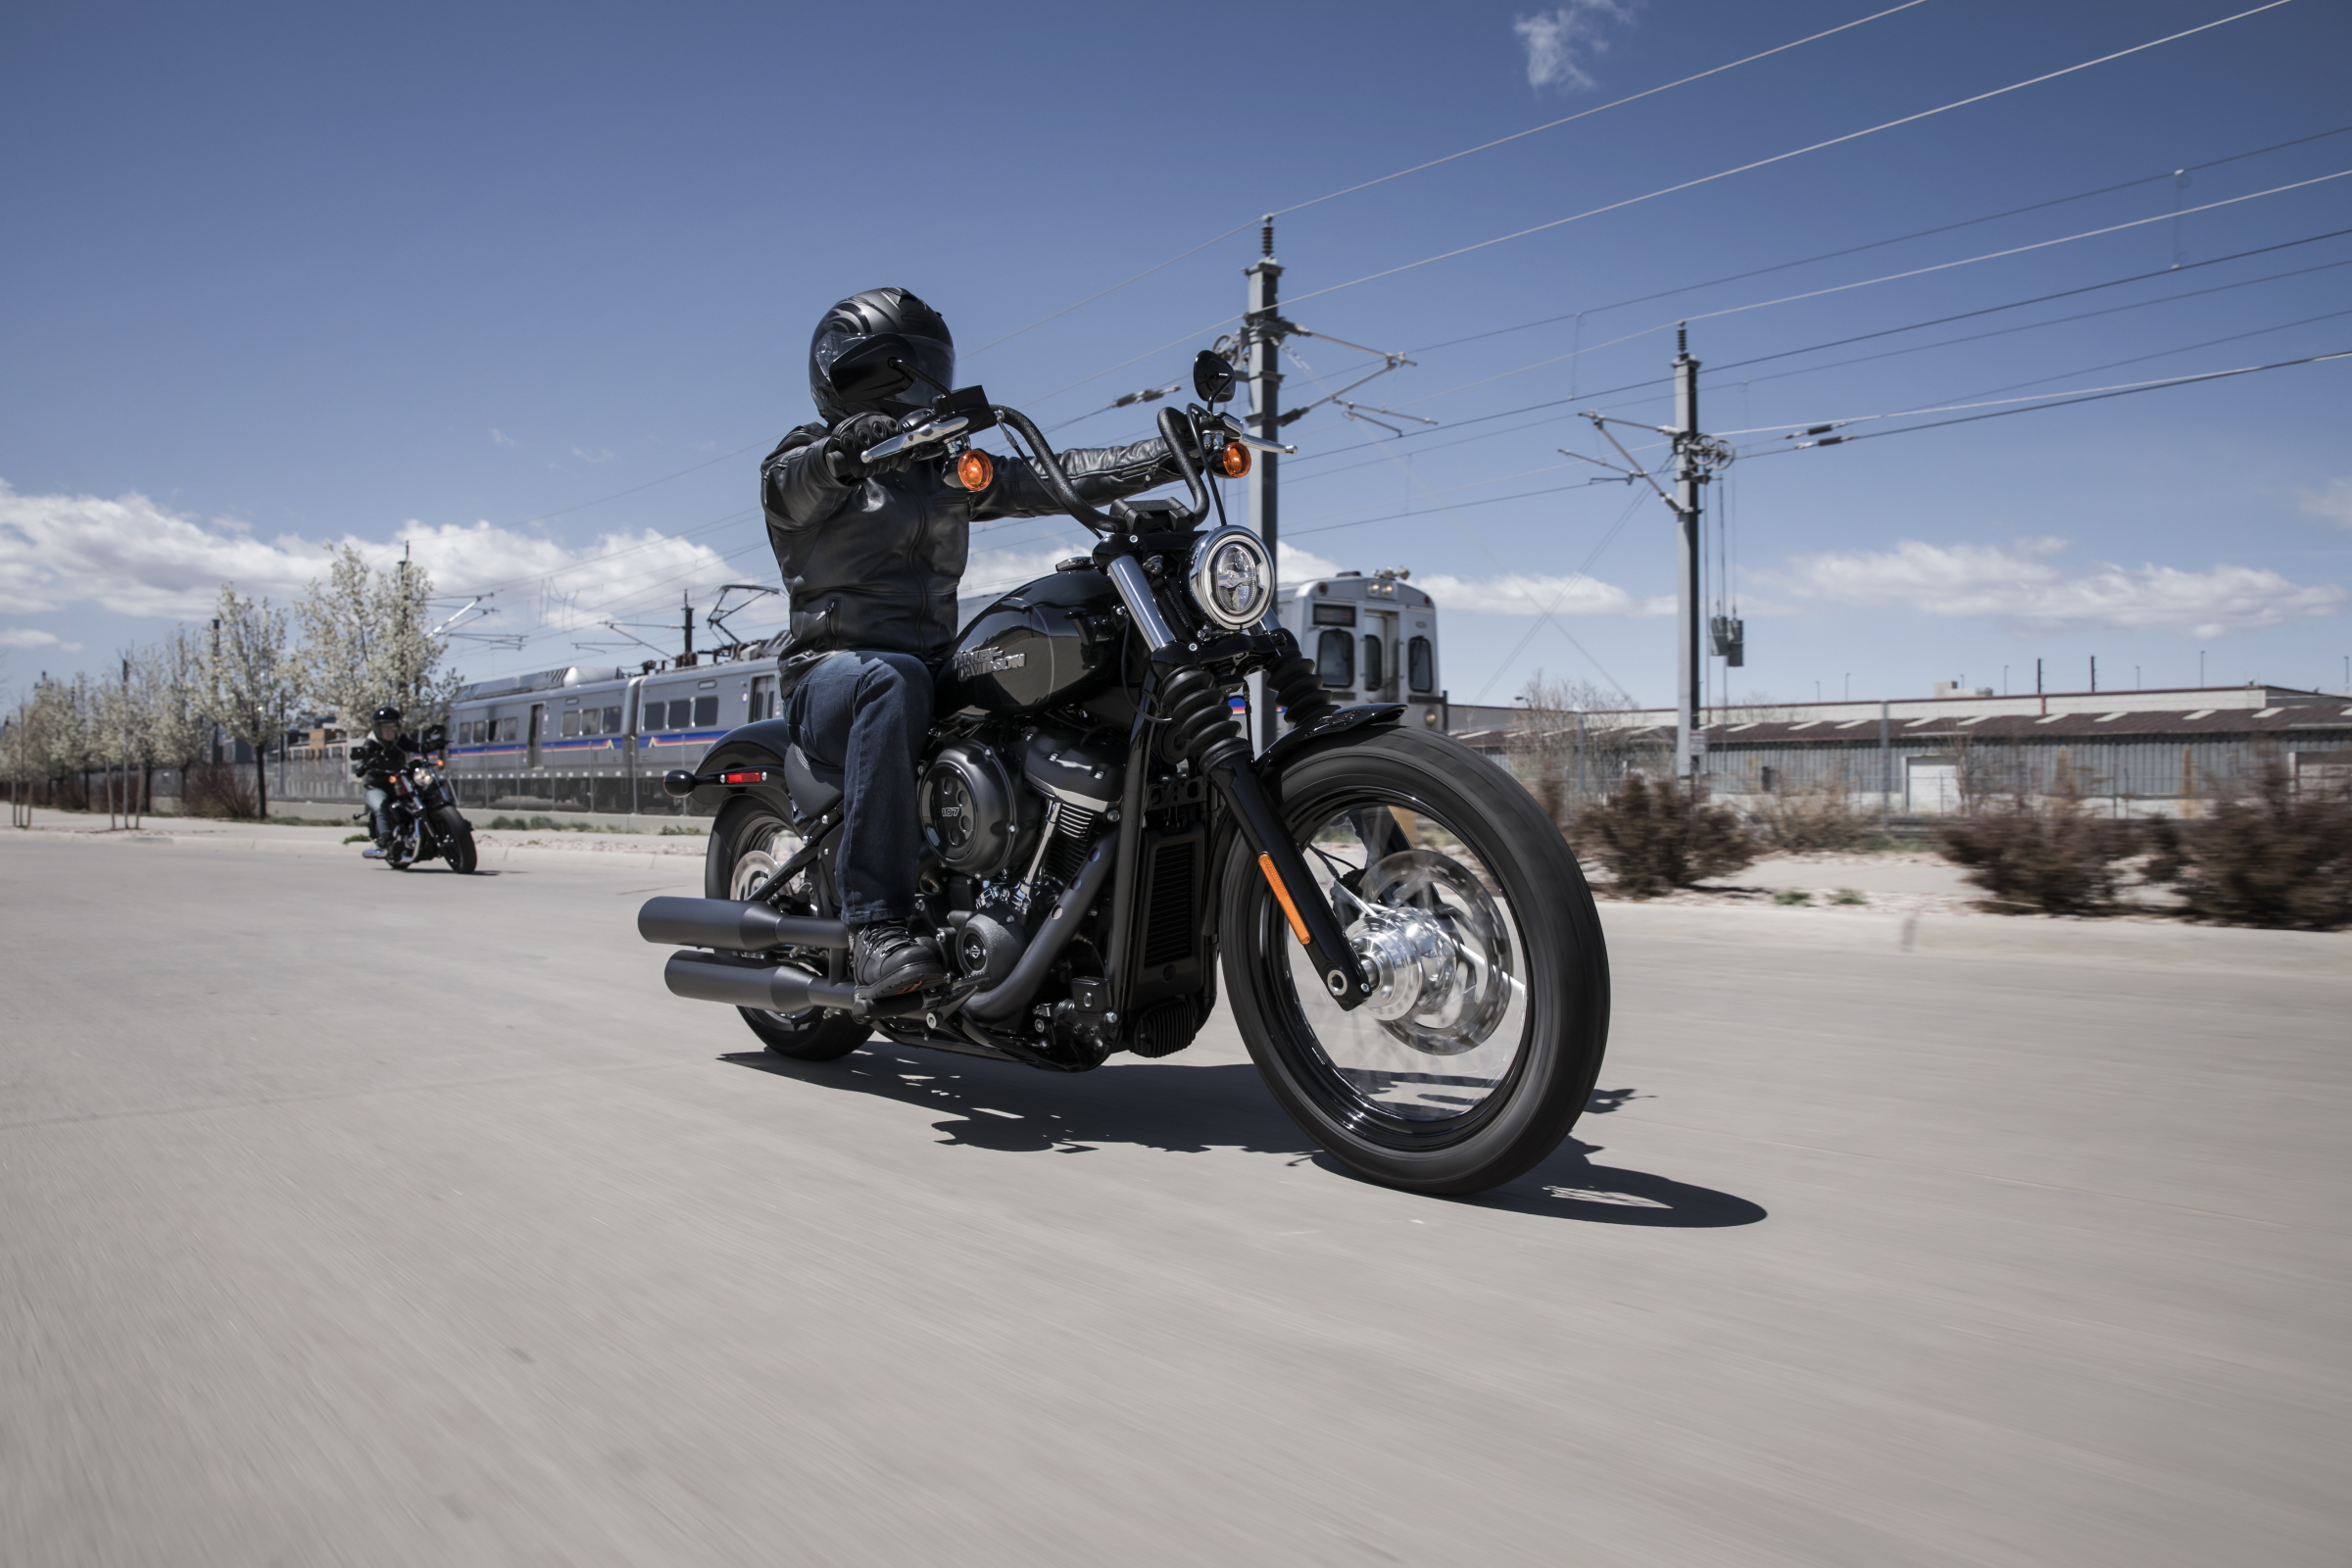 UCLA study, says motorcycling reduces stress, increases